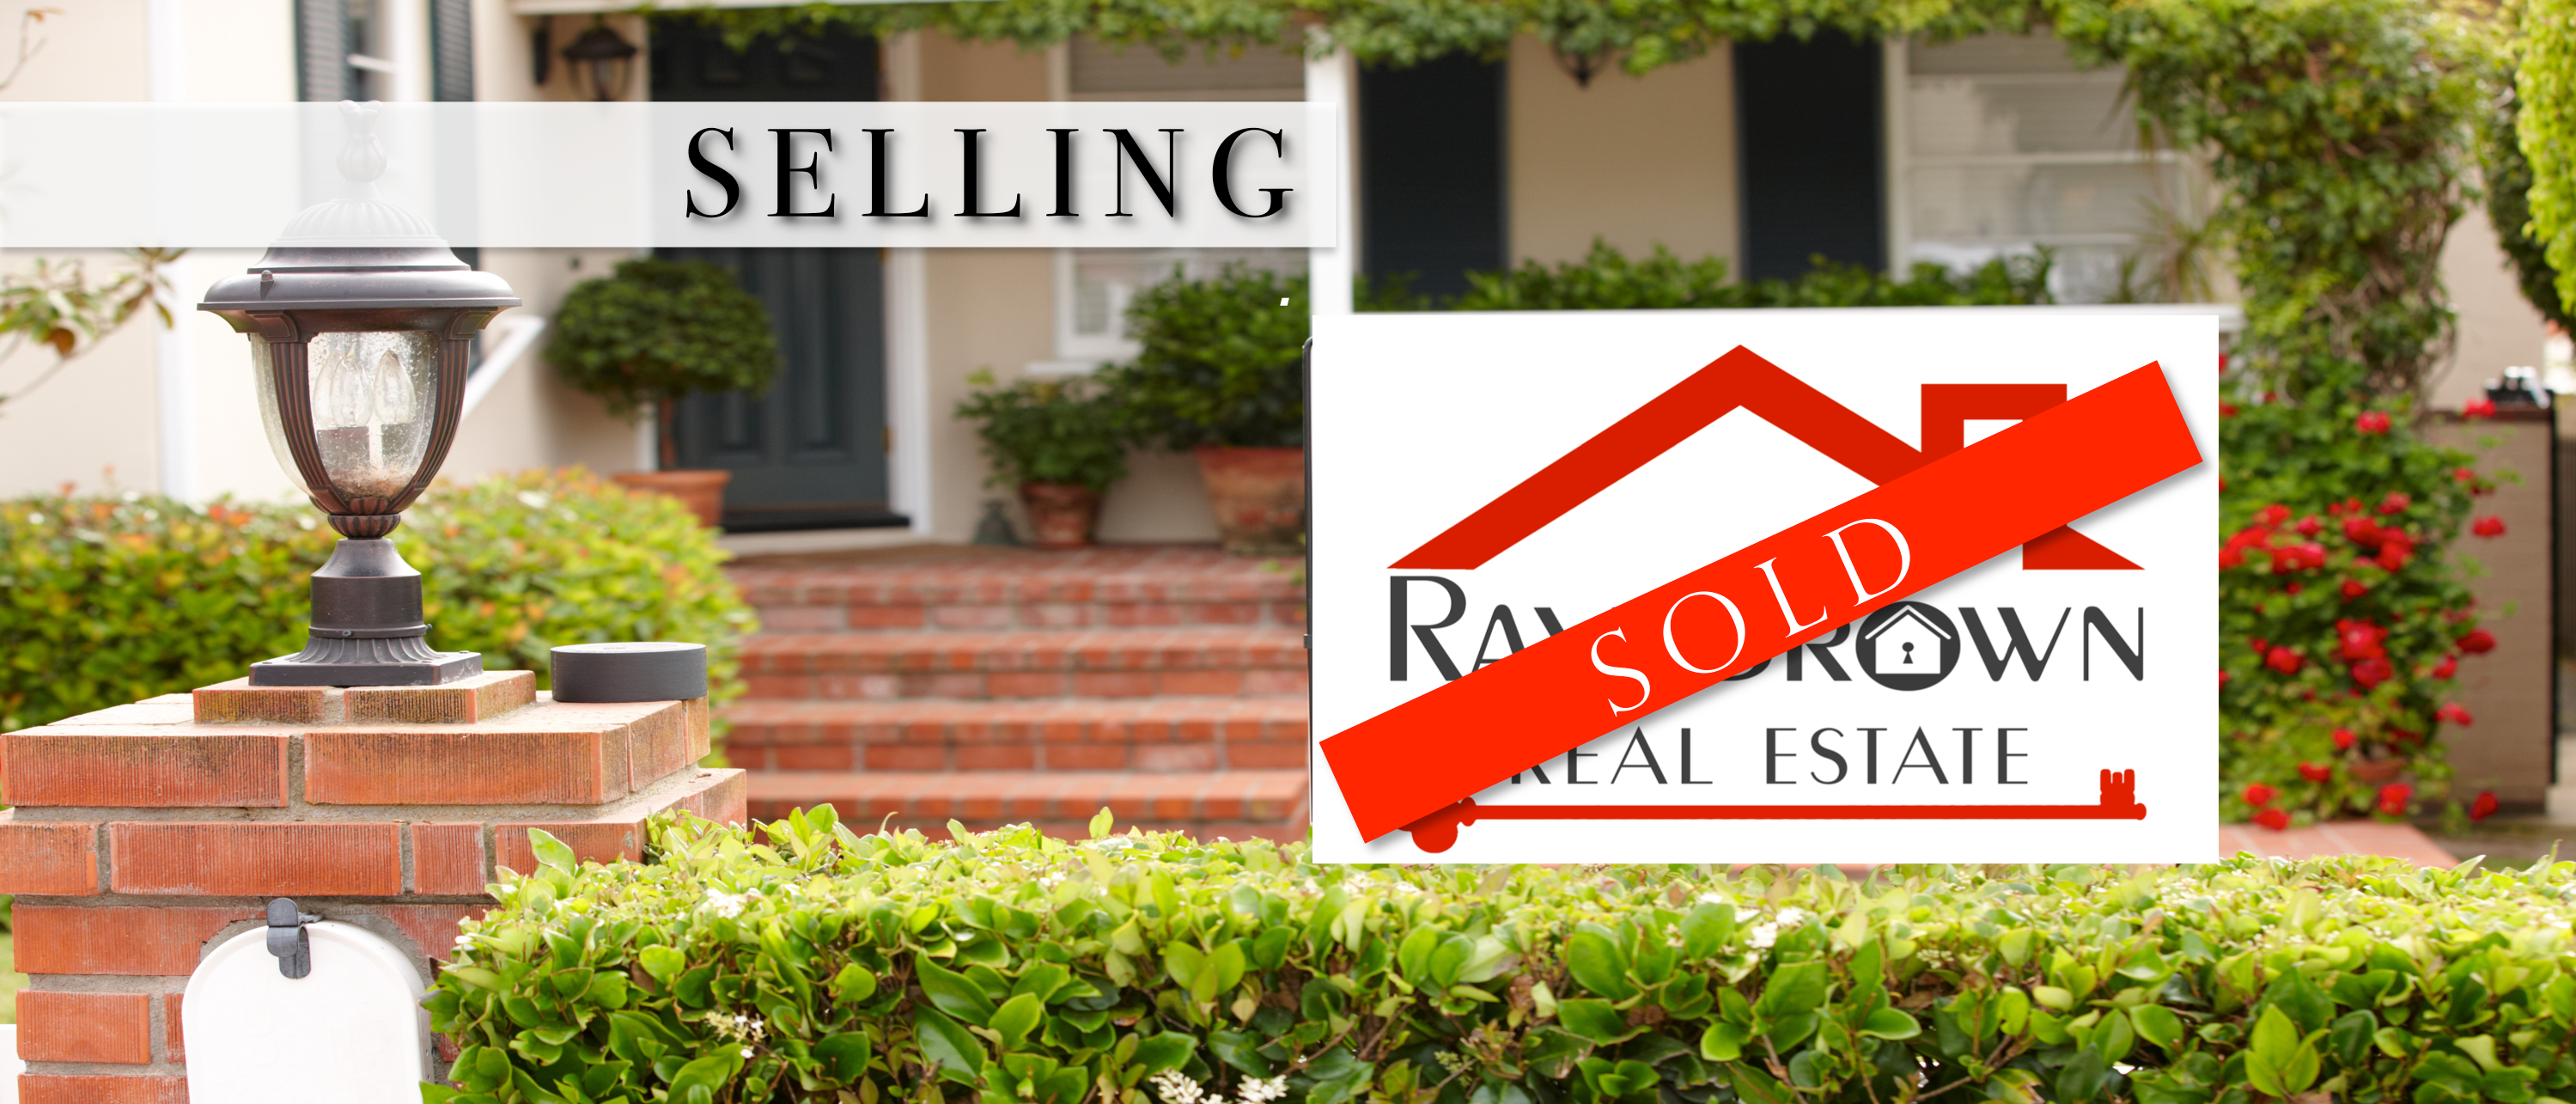 Prepare To Sell Ray Brown Real Estate # Muebles Ulla Vedra